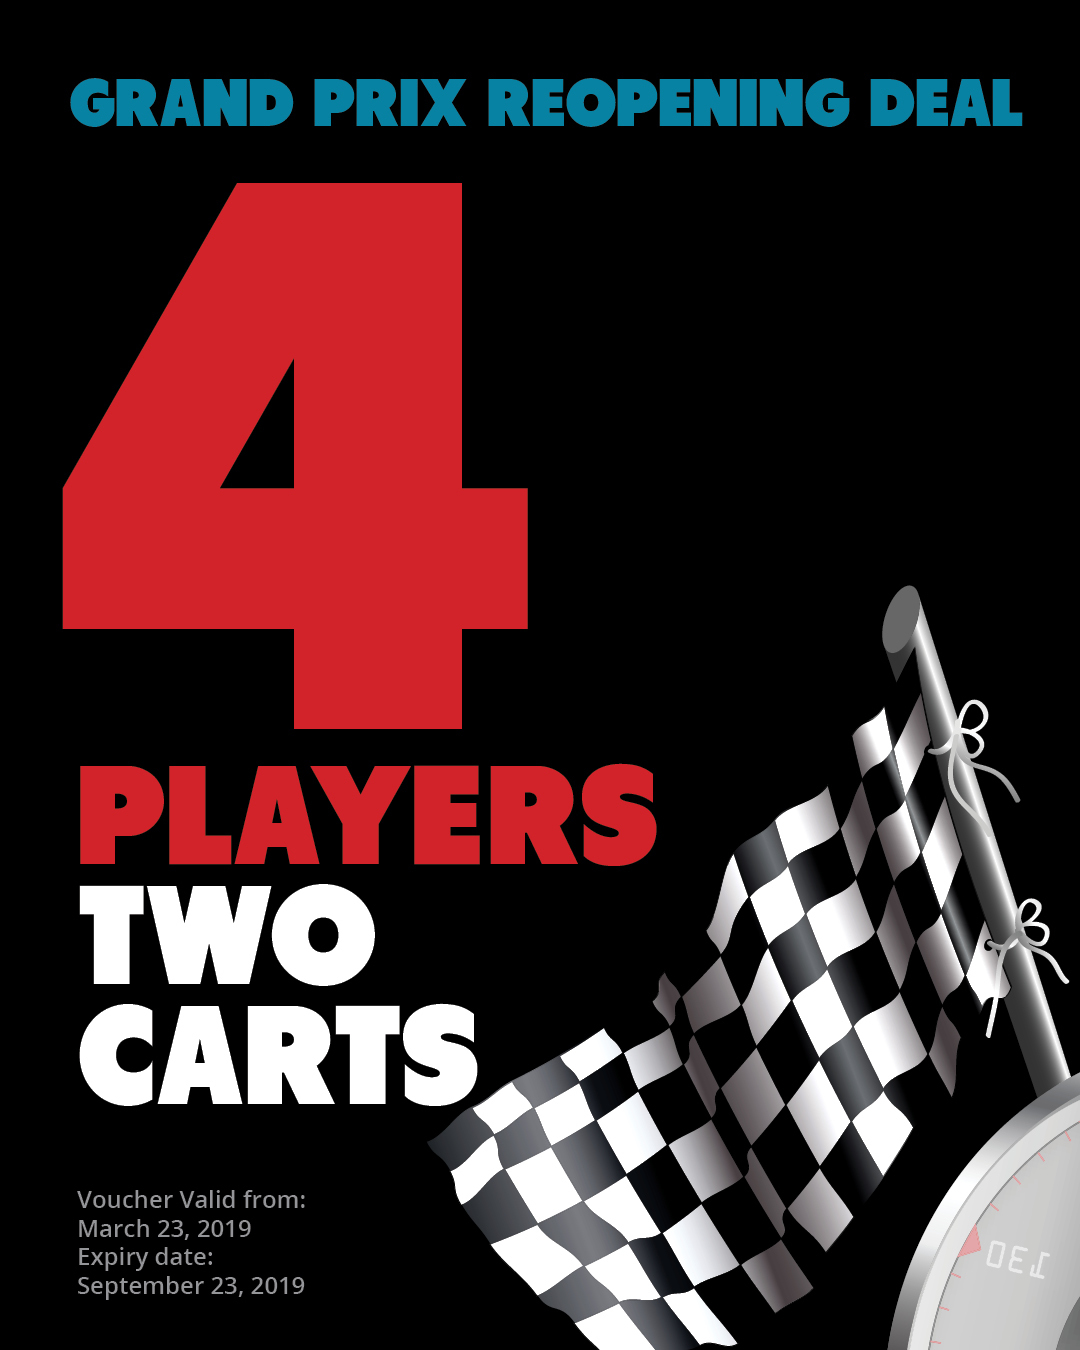 SPECIAL | Golf for 4 players with 2 carts 19GP4PLAYERS